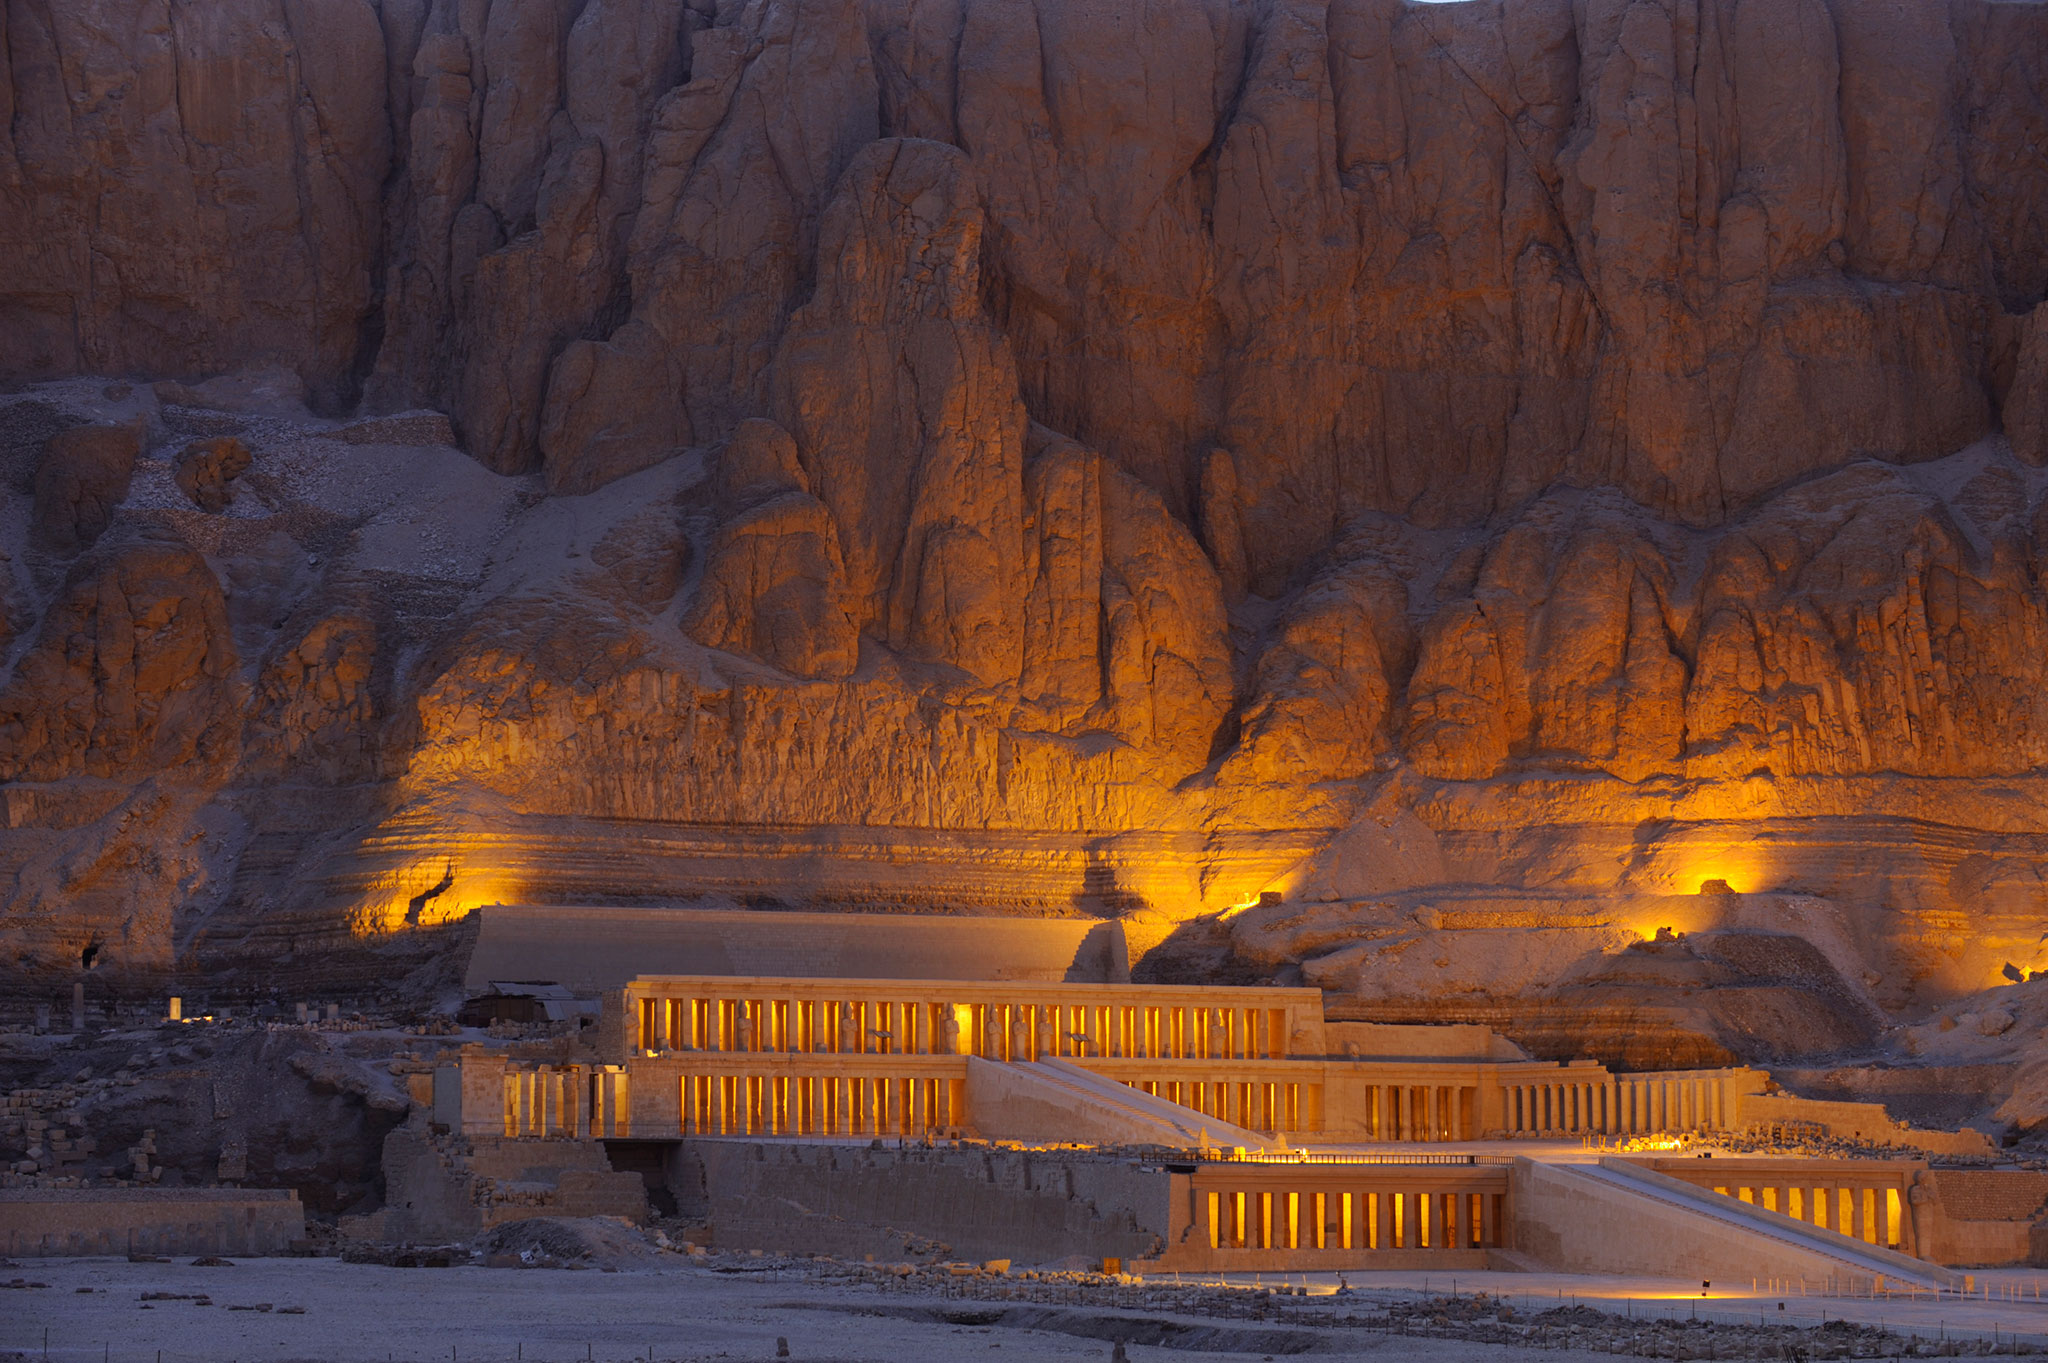 Temple of Deir Al-Bahri (Queen Hatshepsut's temple) some of the best places to visit in Luxor